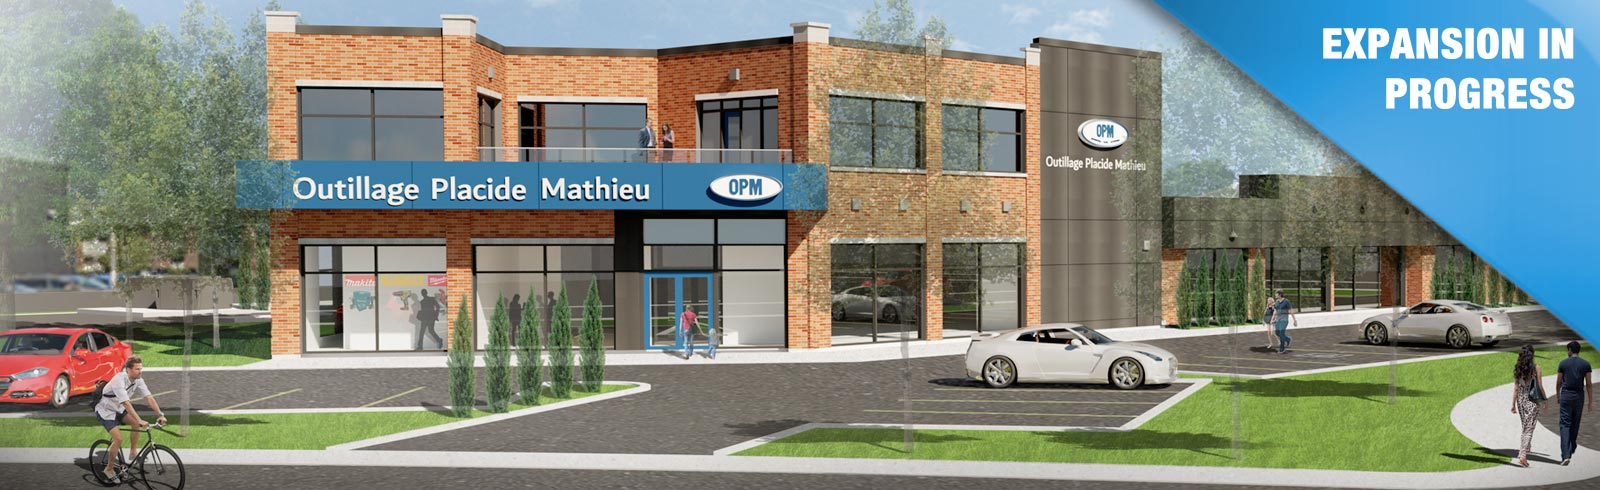 Outillage Placide Mathieu store is growing